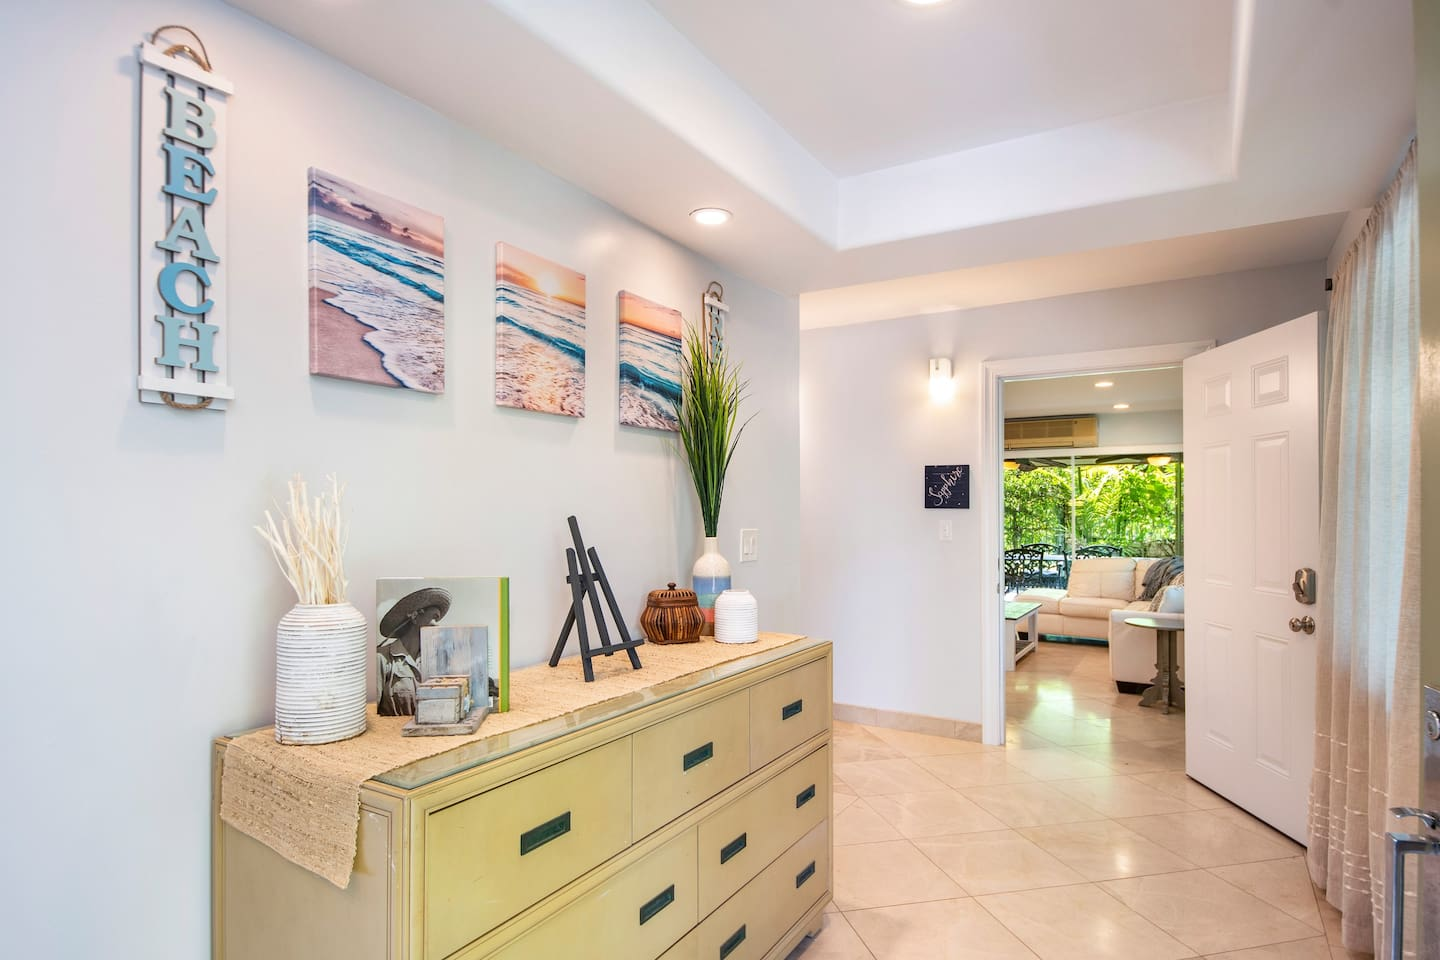 Welcome to the Sapphire floor, your home for your stay in Kailua!